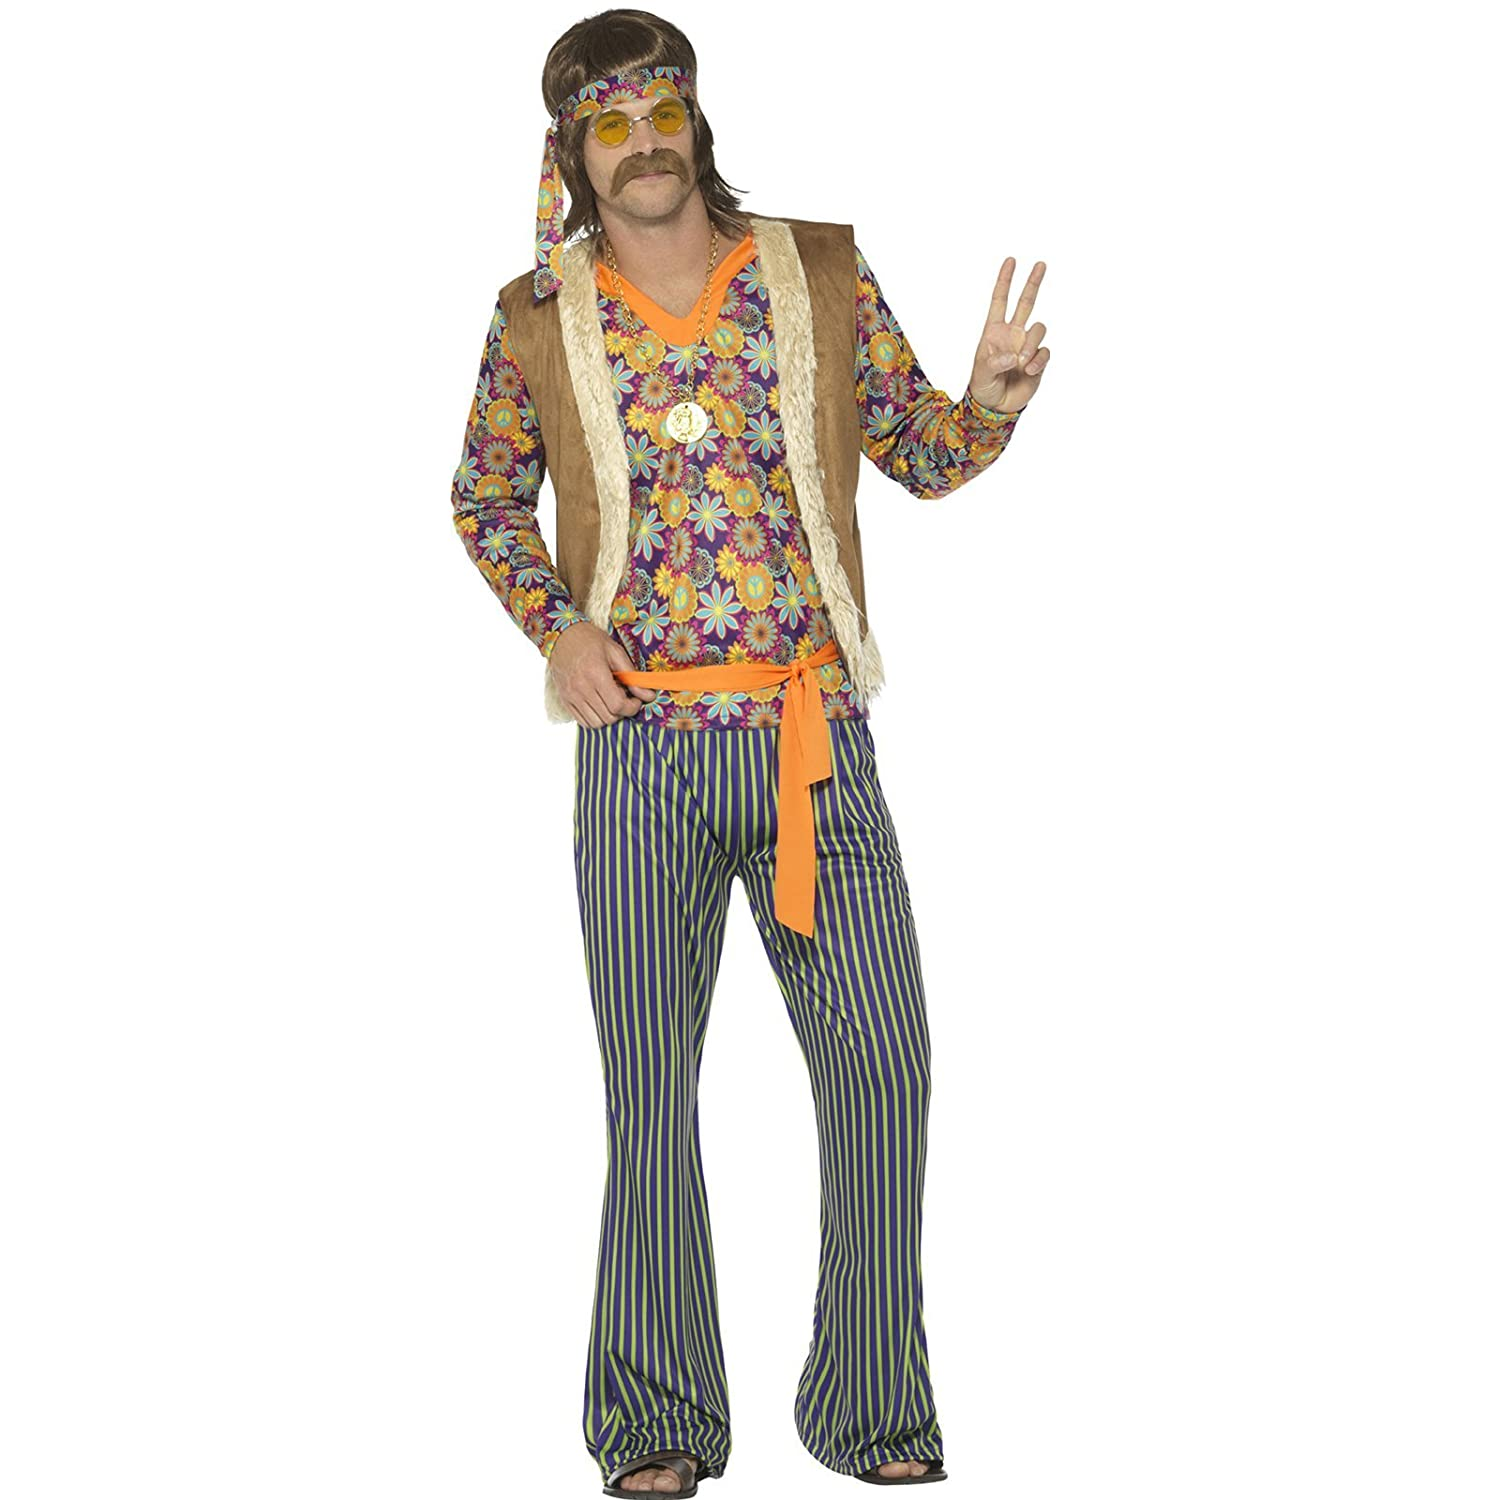 Smiffy's Men's 60s Singer Costume, Male, with Top, Waistcoat